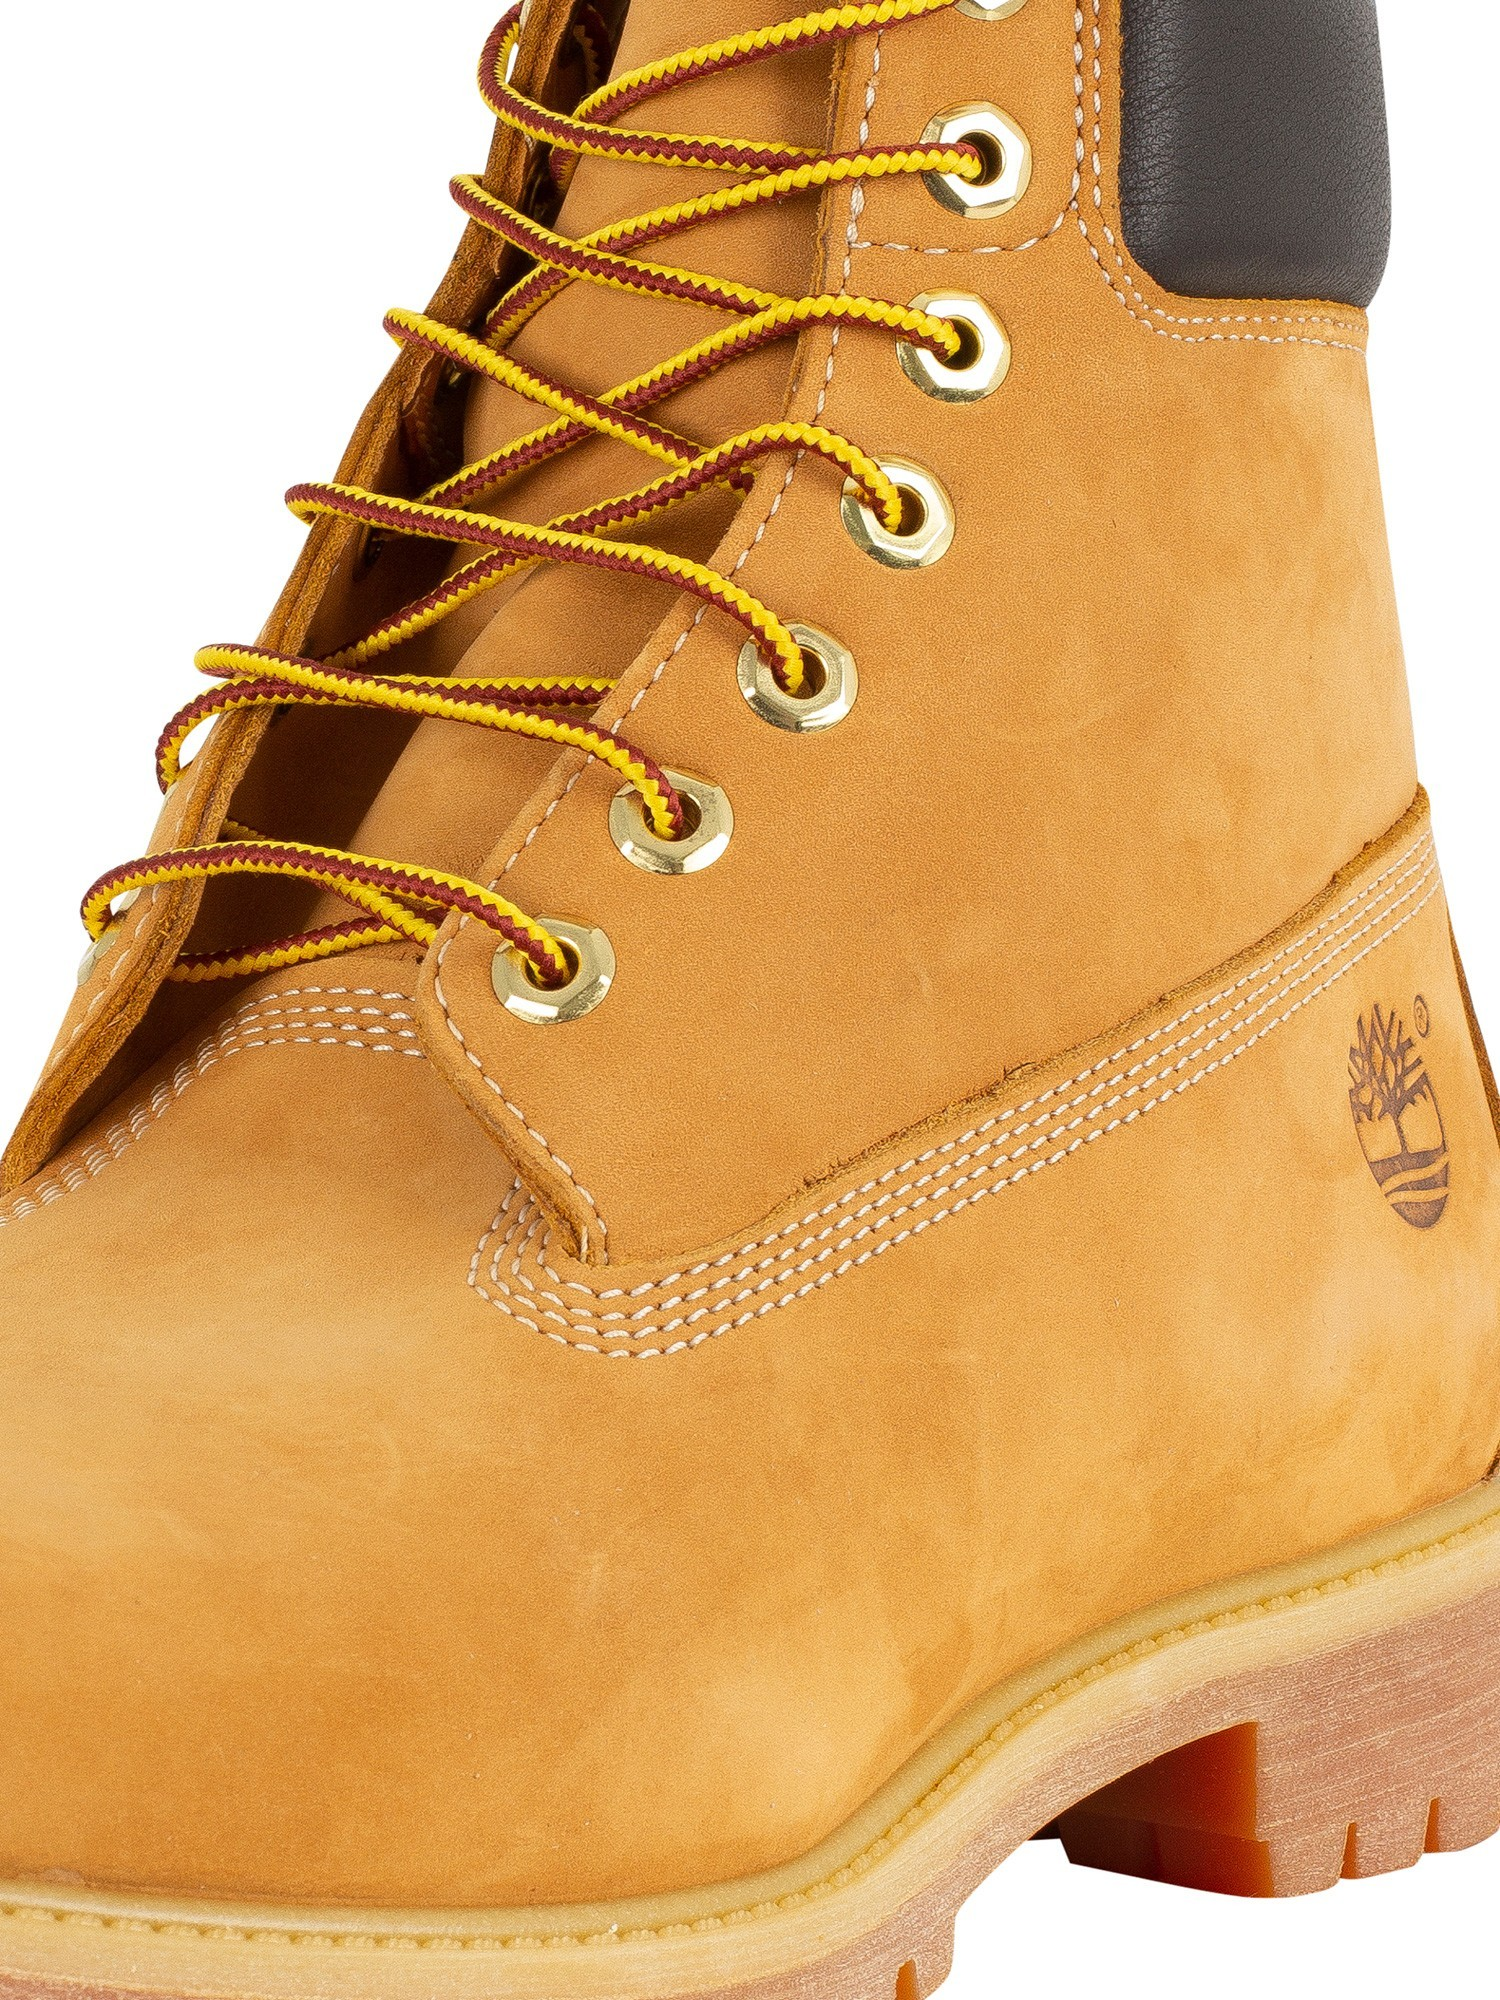 Timberland AF 6 Inch Premium BT Boots Wheat Yellow